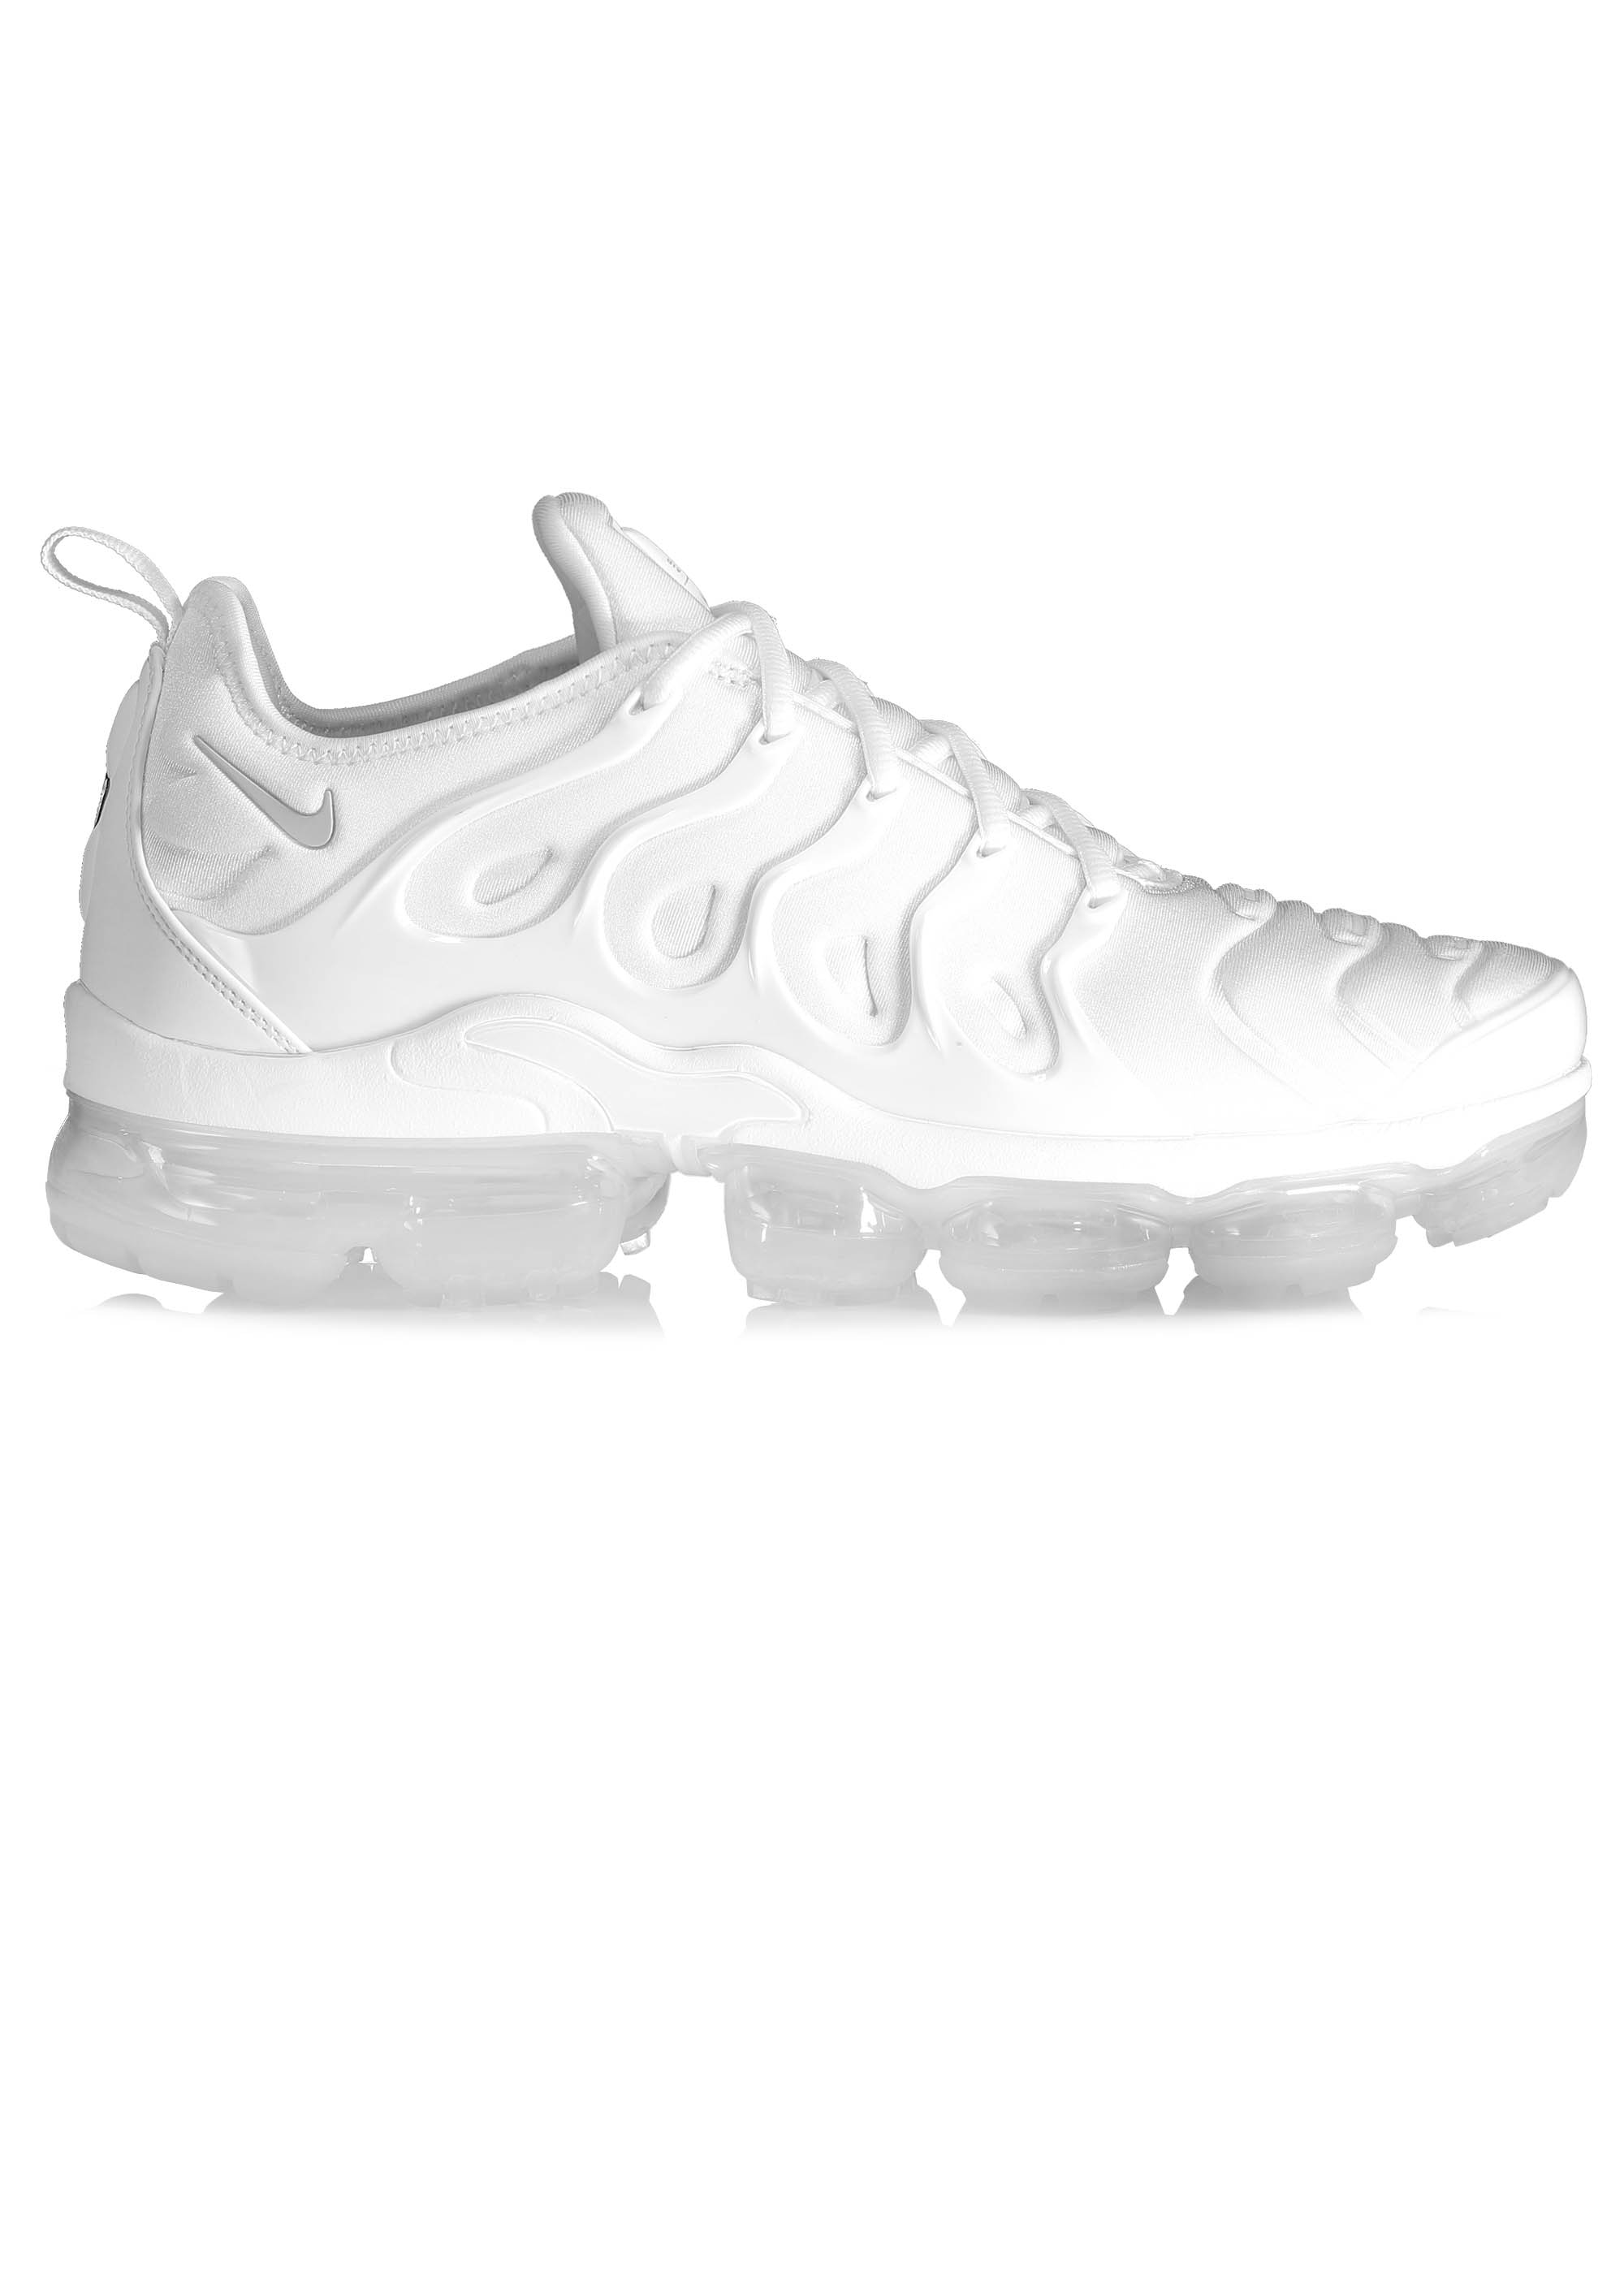 new product 1d166 5ef03 Nike Footwear Air Vapormax Plus - White